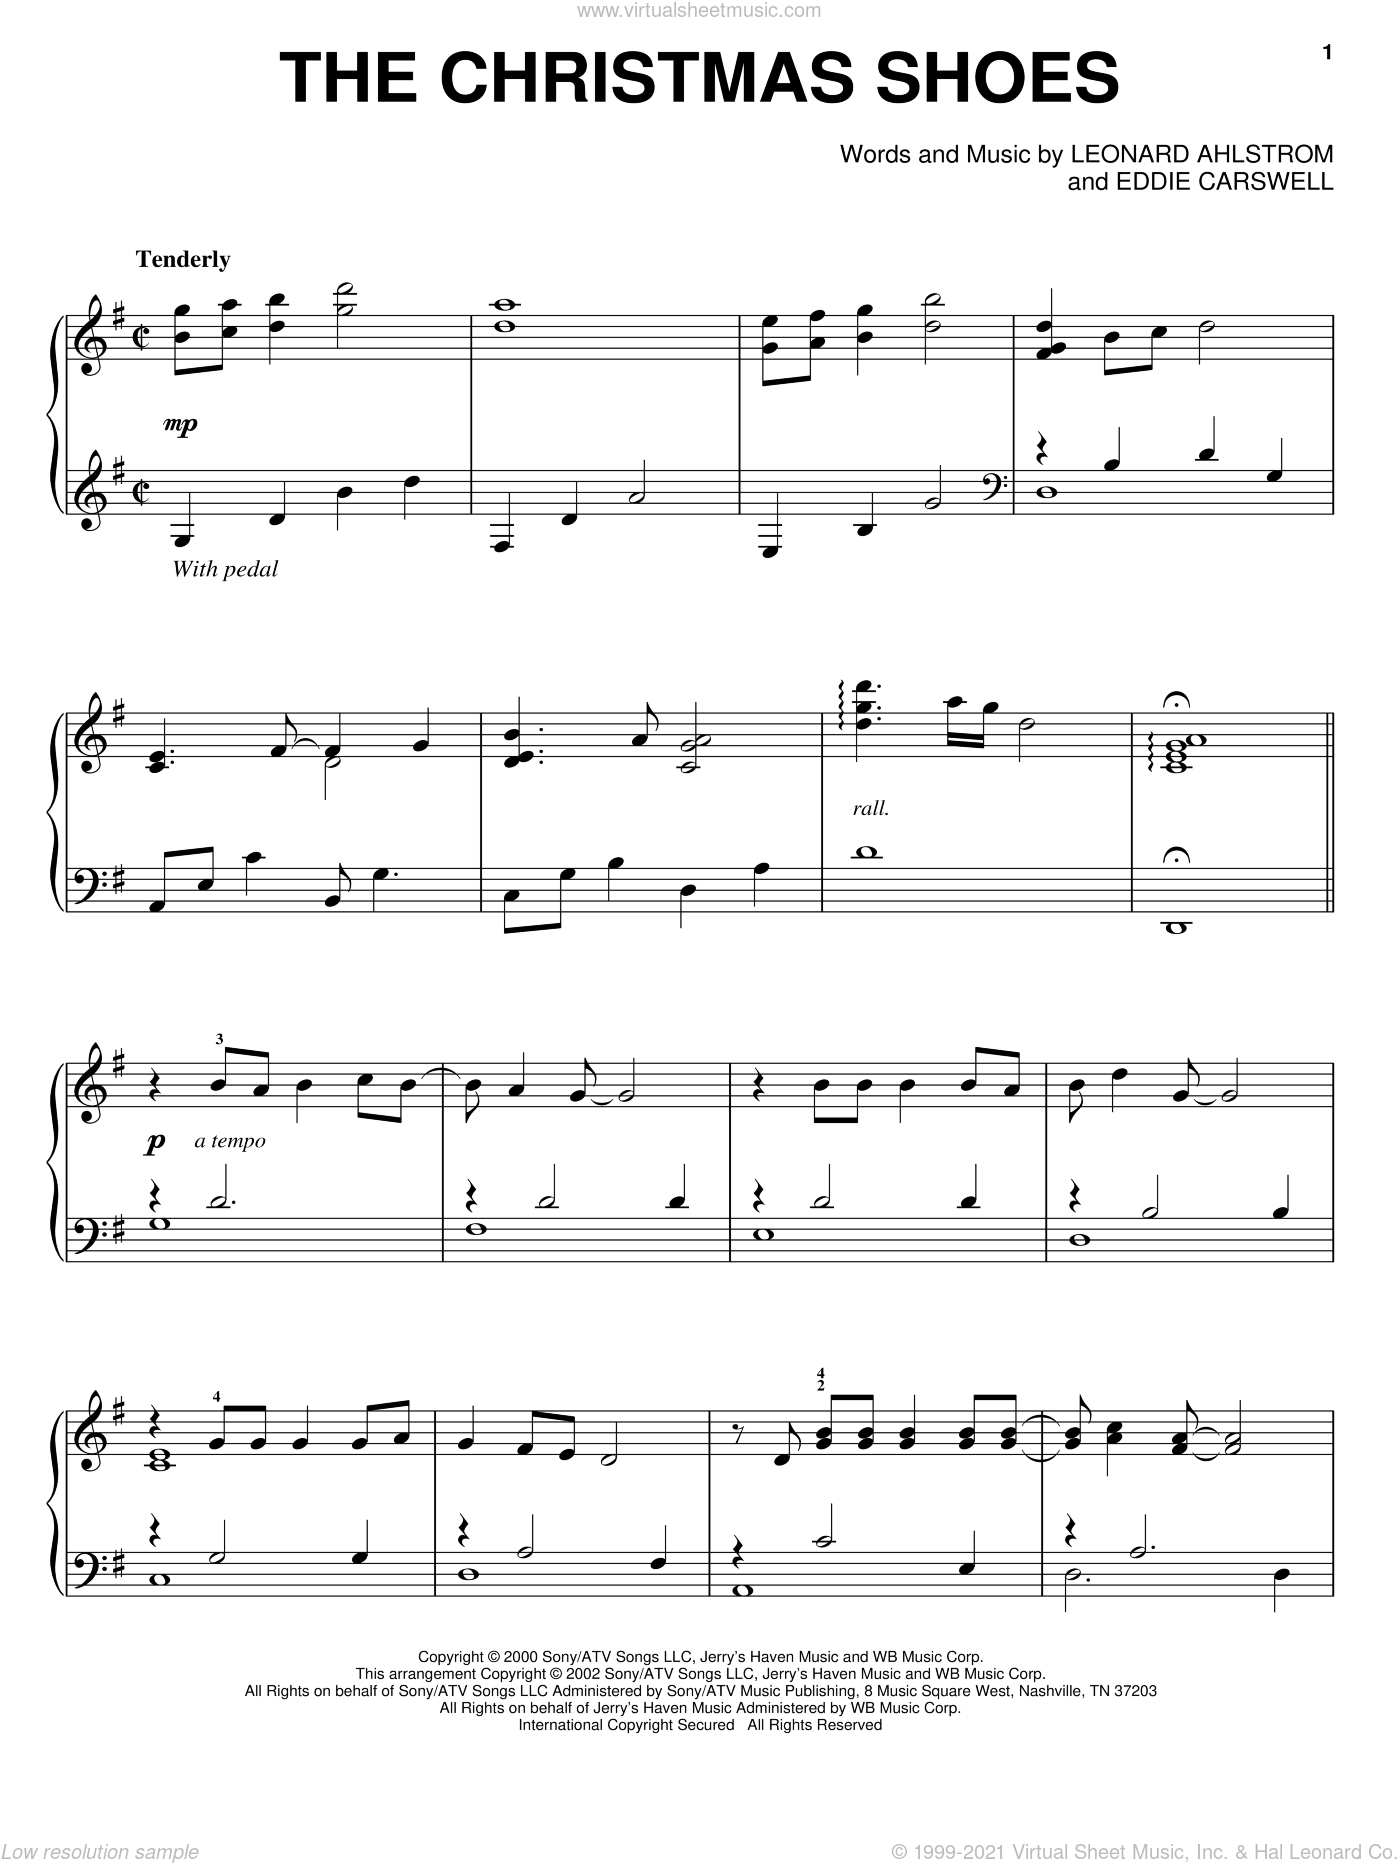 The Christmas Shoes sheet music for piano solo by 3 Of Hearts, Eddie Carswell and Leonard Ahlstrom, intermediate skill level